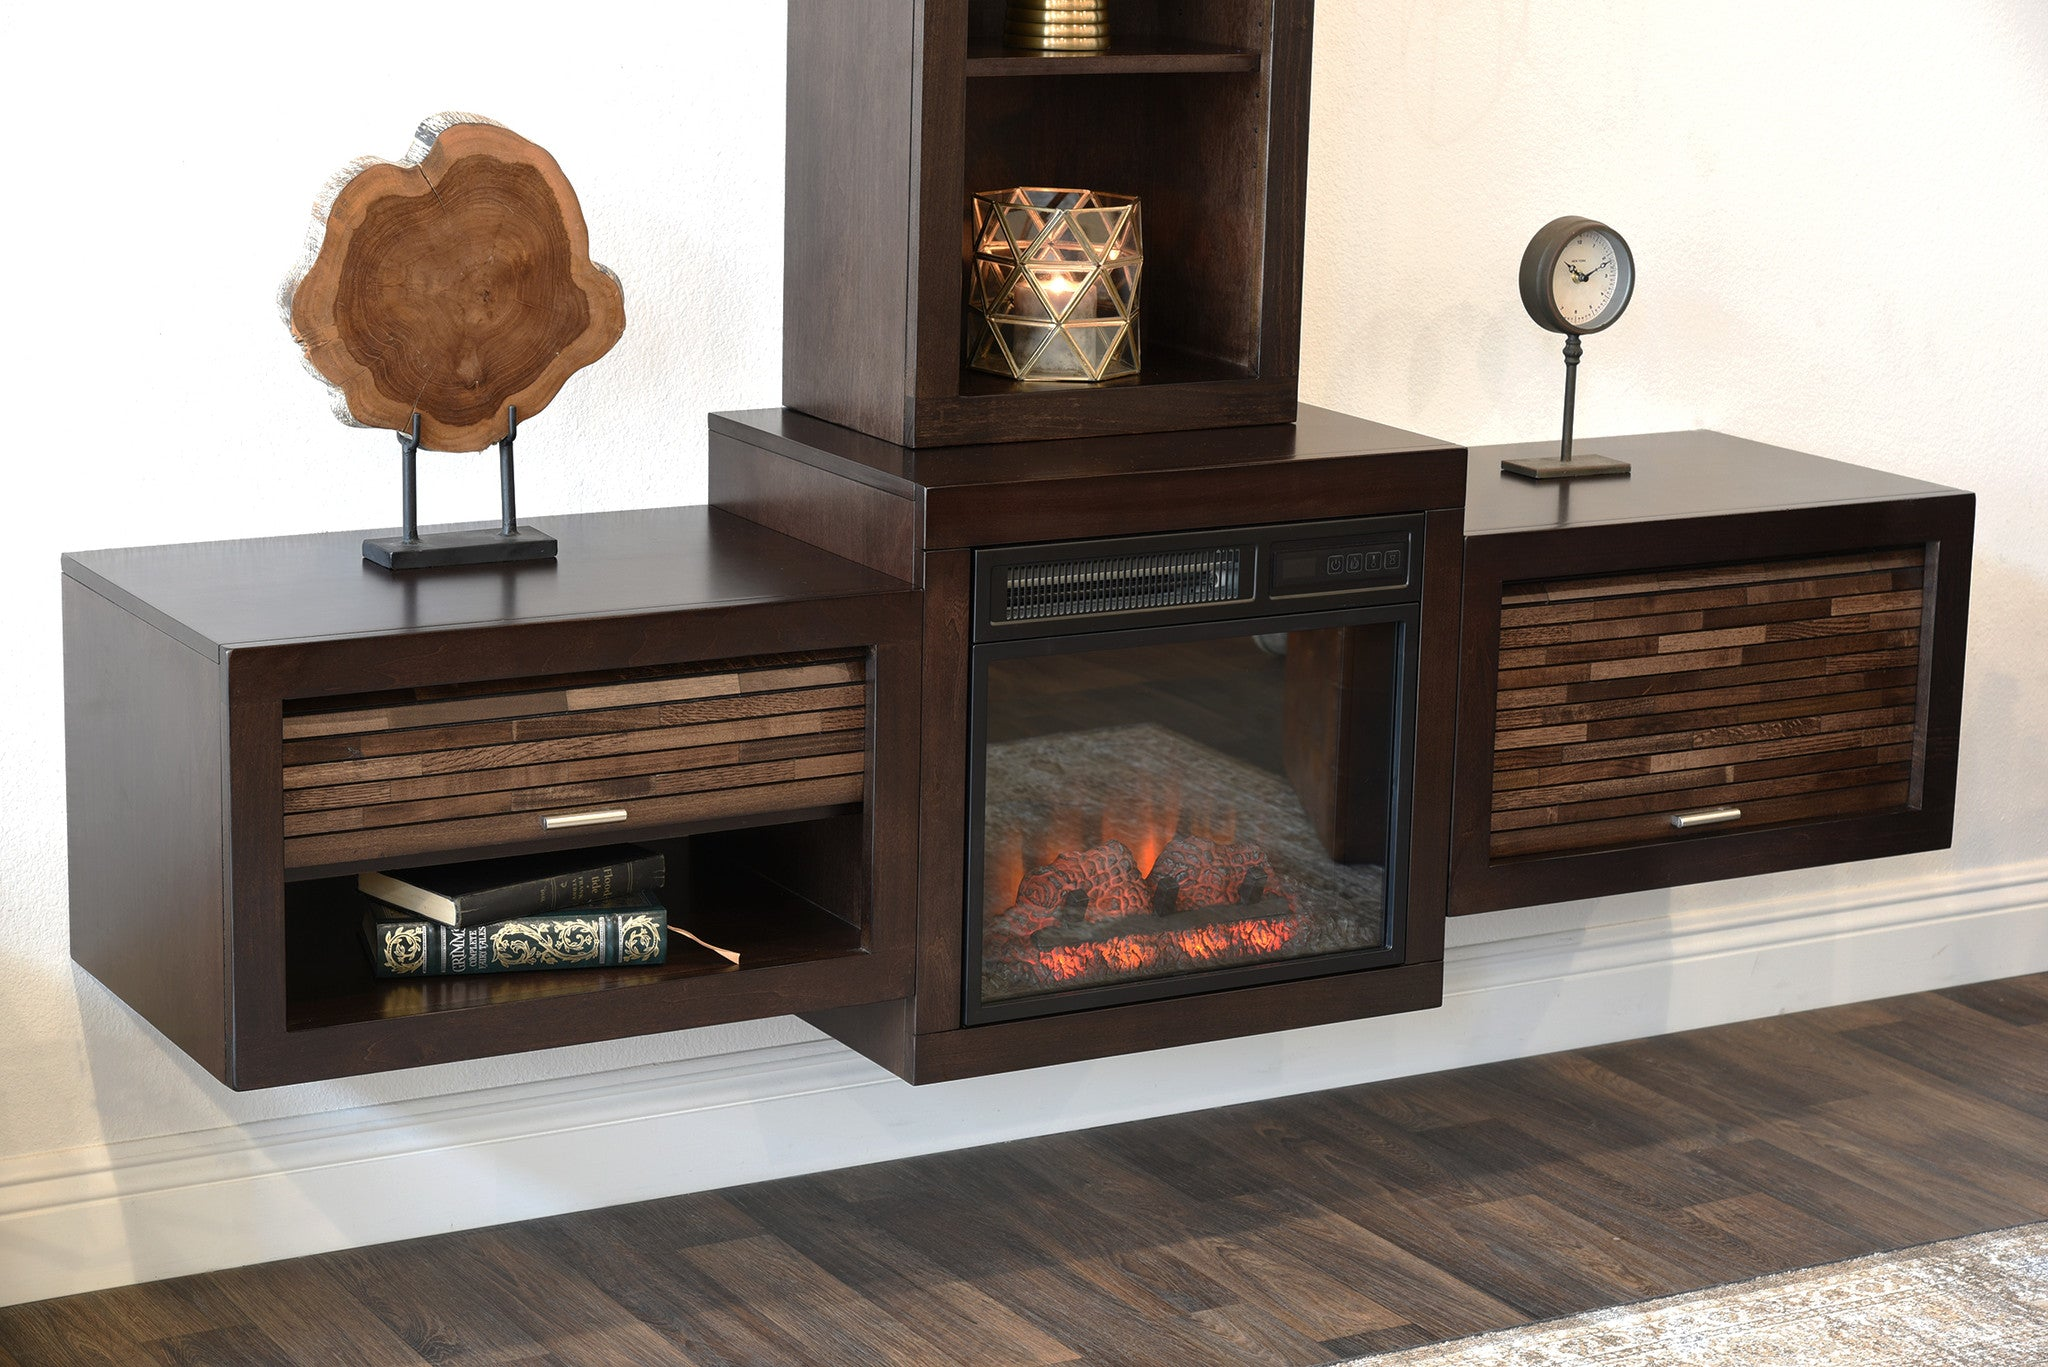 Save $$ With This Bundle! Floating Wall Mount Media Console With Fireplace and Bookcase  The Eco Geo is a unique eco-friendly modular entertainment console which is handcrafted of solid Poplar and genuine Maple veneers.   This bundle includes our electr